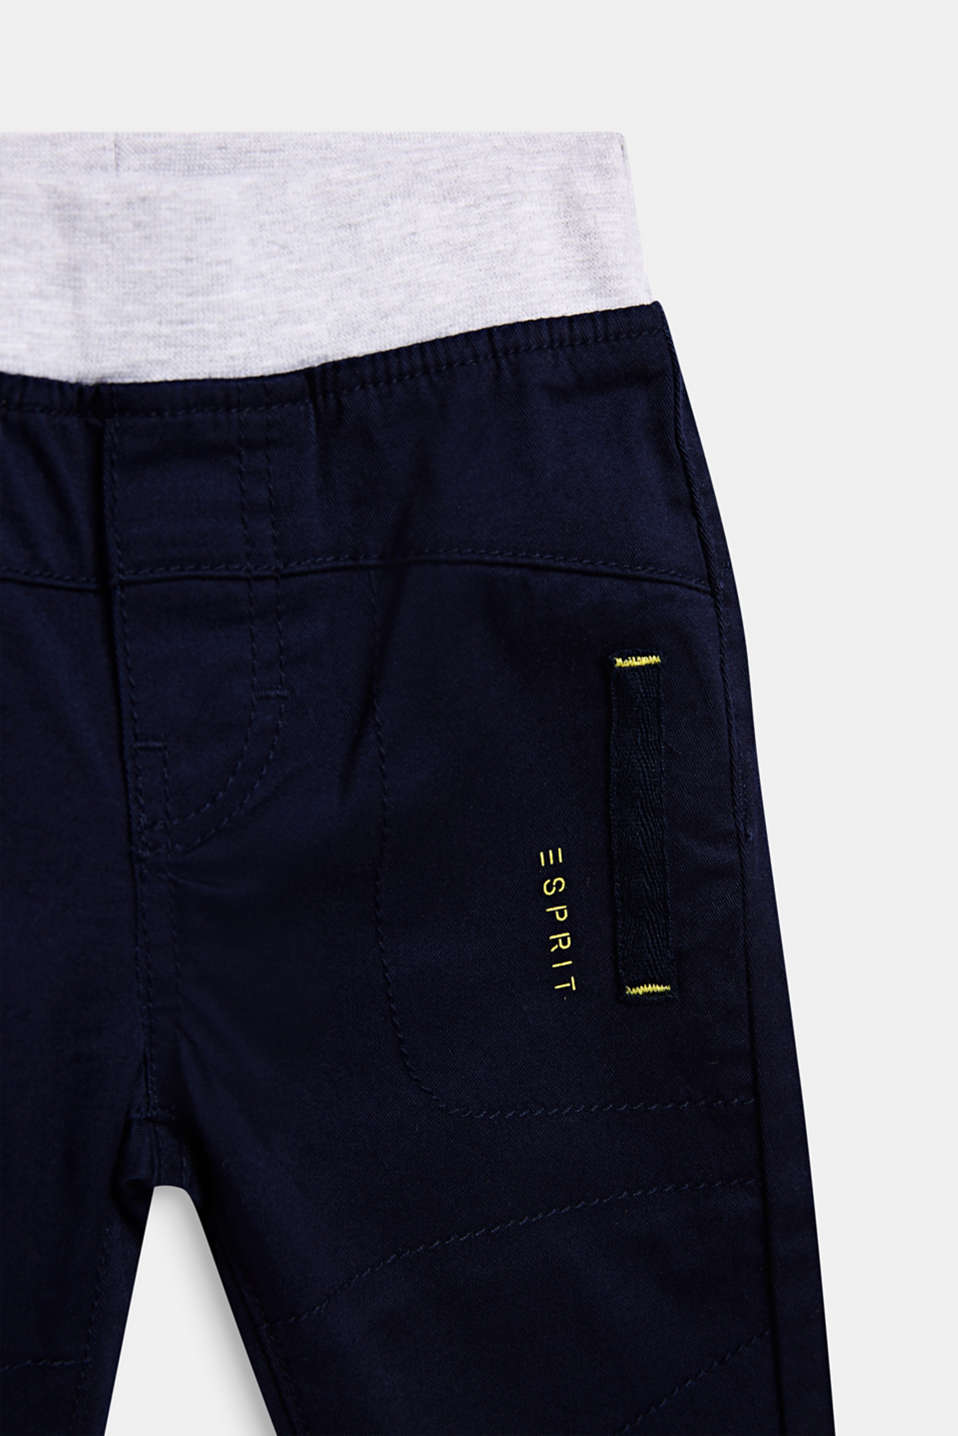 Woven trousers with an elasticated waistband, LCMIDNIGHT BLUE, detail image number 2